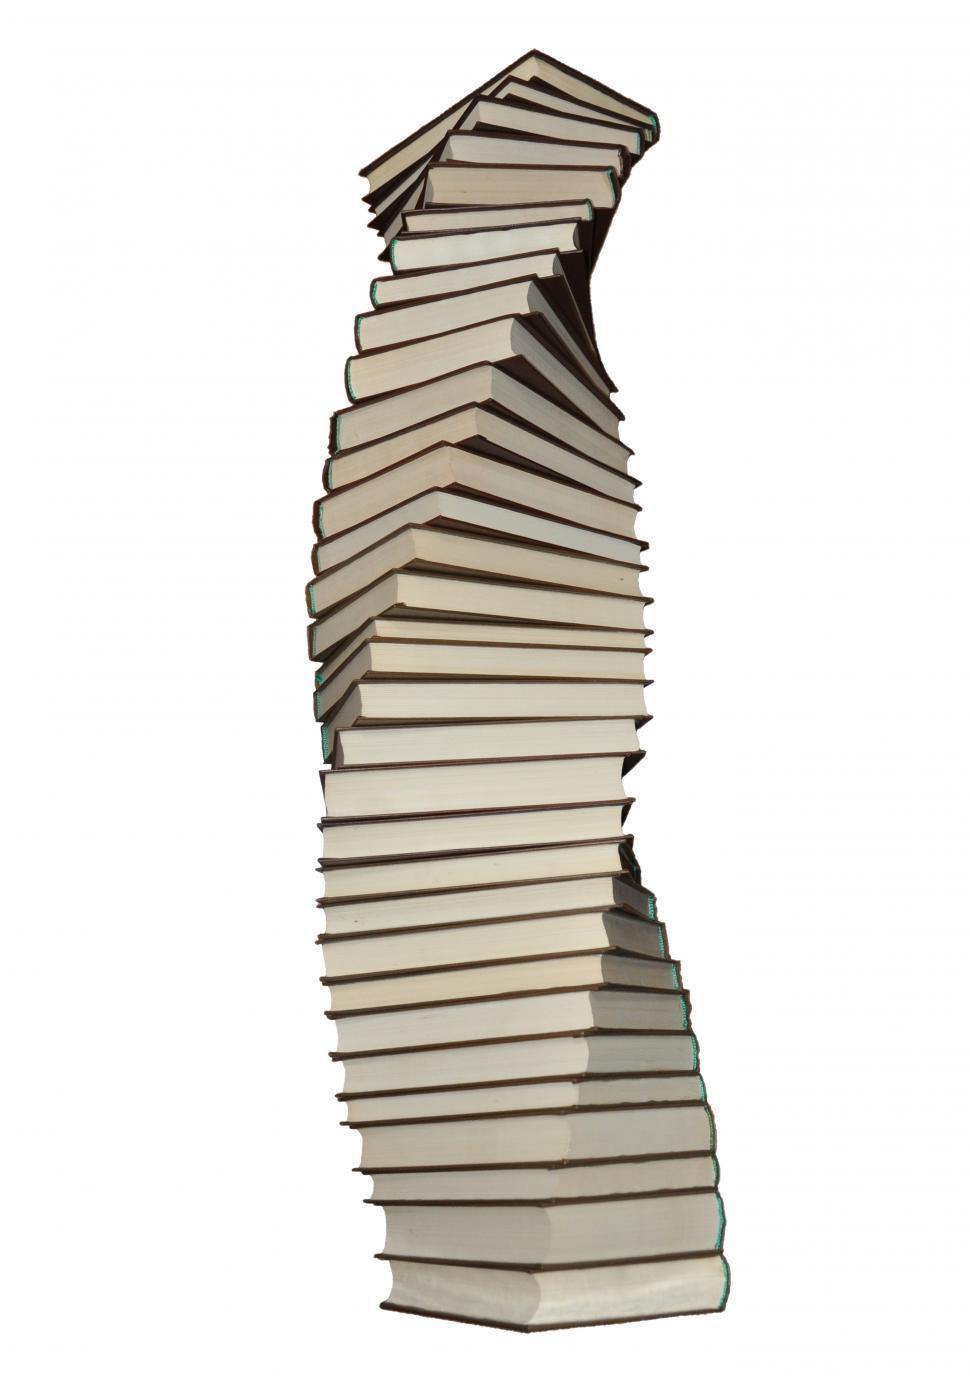 Download Free Stock Photo of Stack of spiraling books